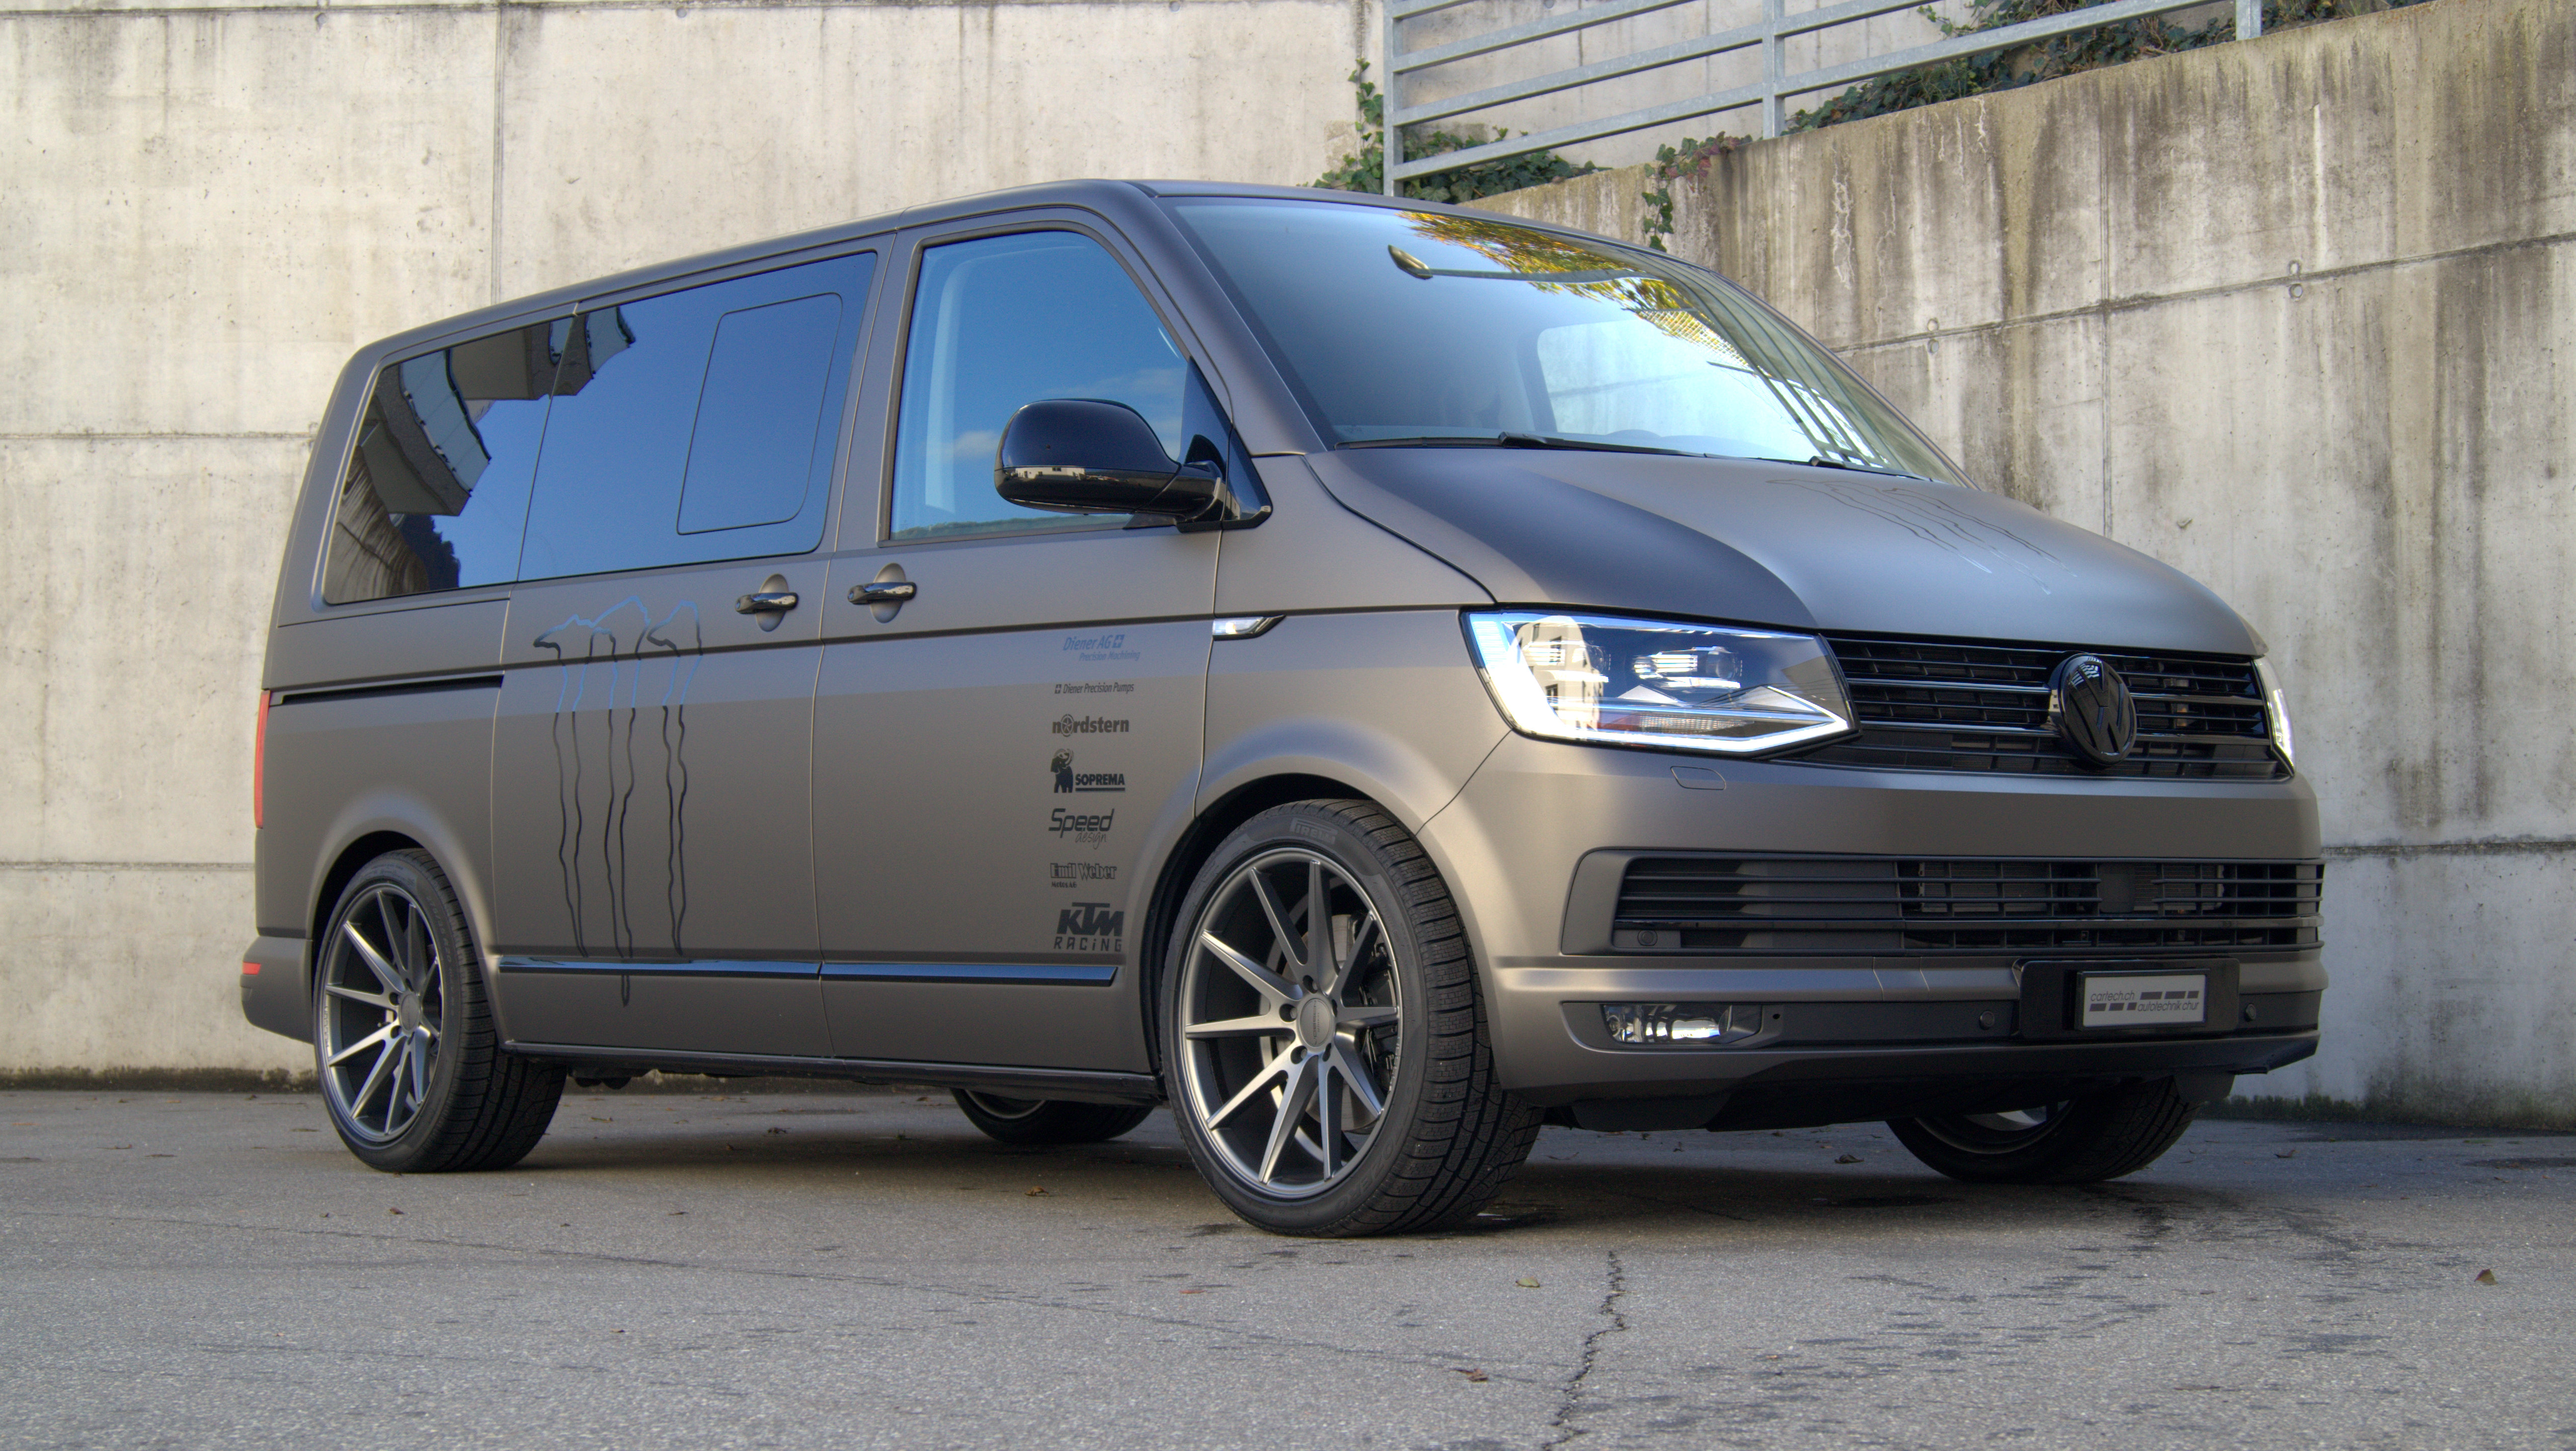 vw t6 multivan by cartech autotechnik ag chur. Black Bedroom Furniture Sets. Home Design Ideas